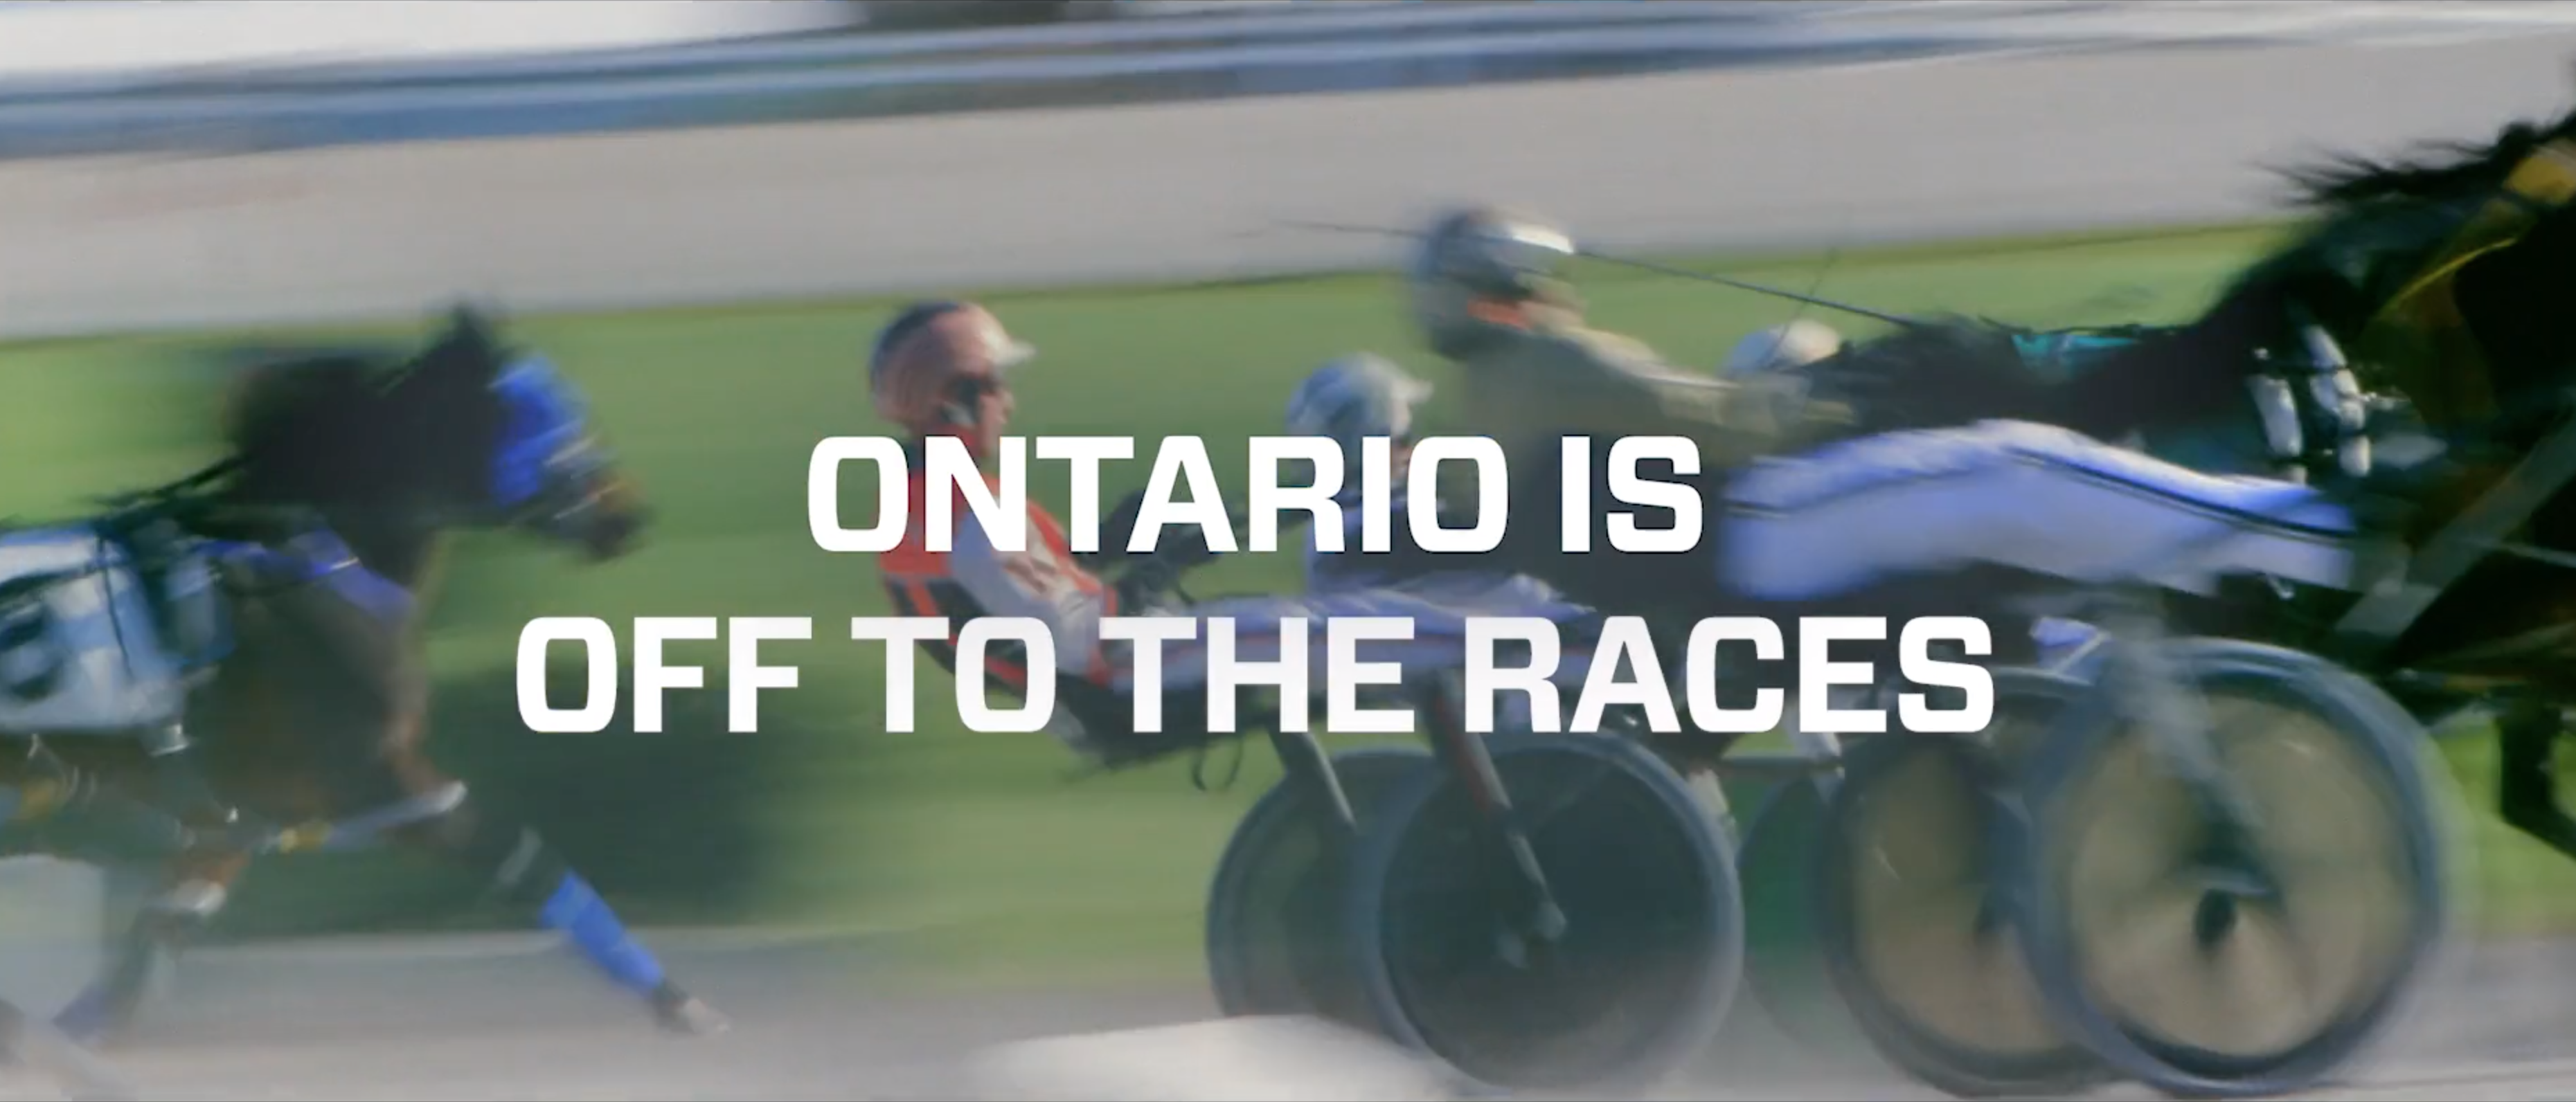 OLG Supports Horse Racing to get Back on Track as the Province Reopens